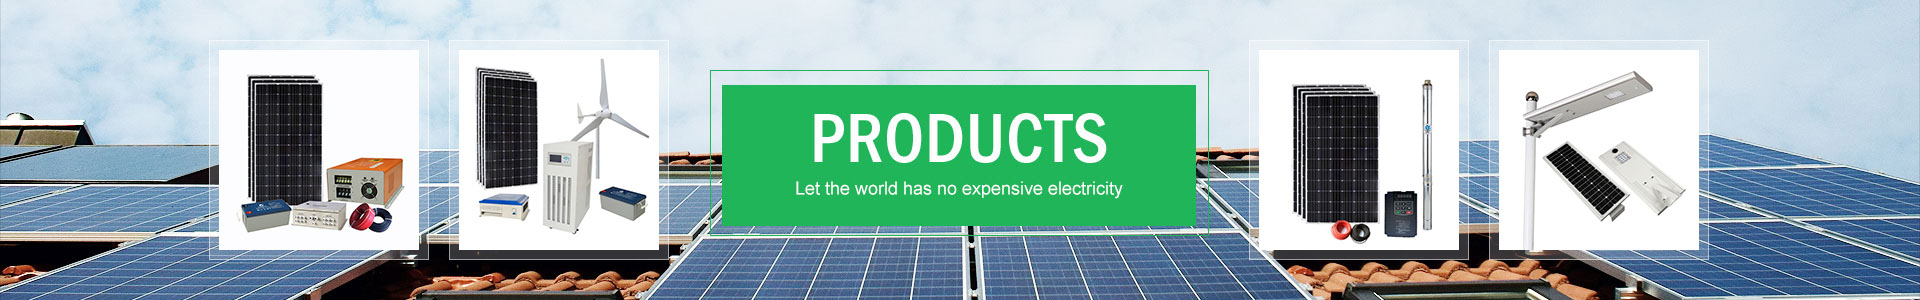 Other solar products